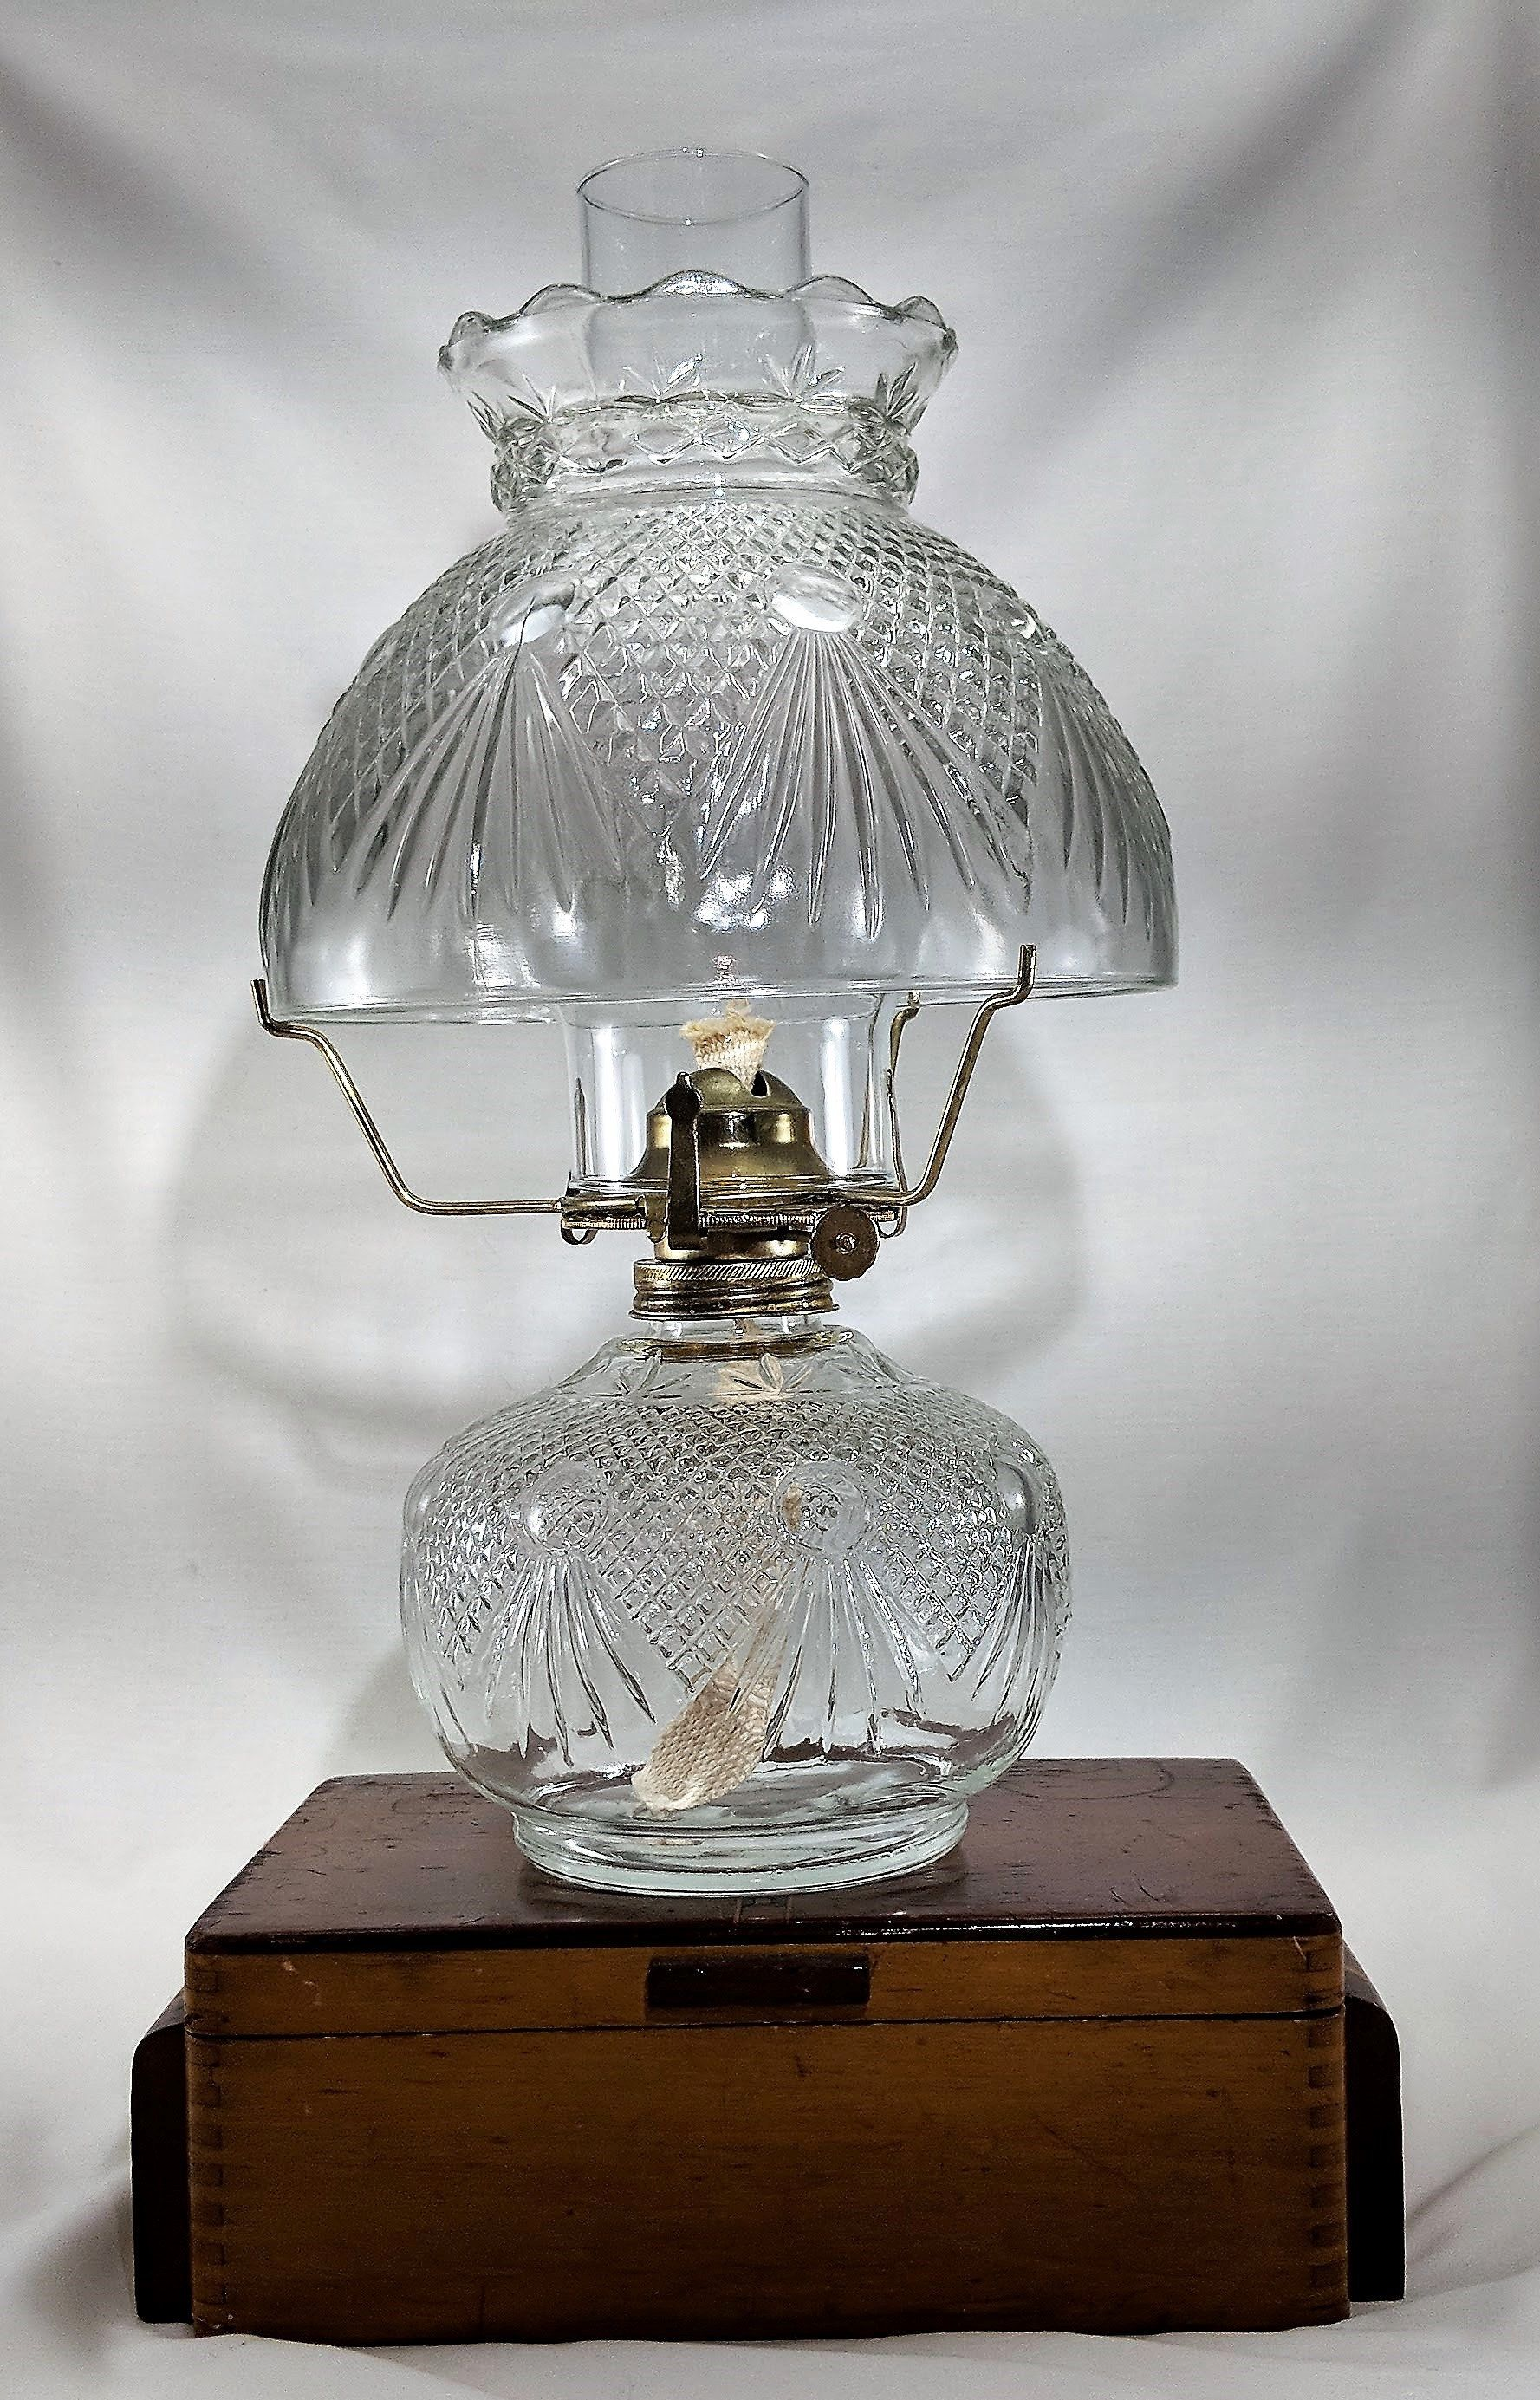 Vintage Oil Lamp Moon Beam Desk Top Oil Lamp With Glass Shade Etsy In 2020 Oil Lamps Lamp Antique Oil Lamps